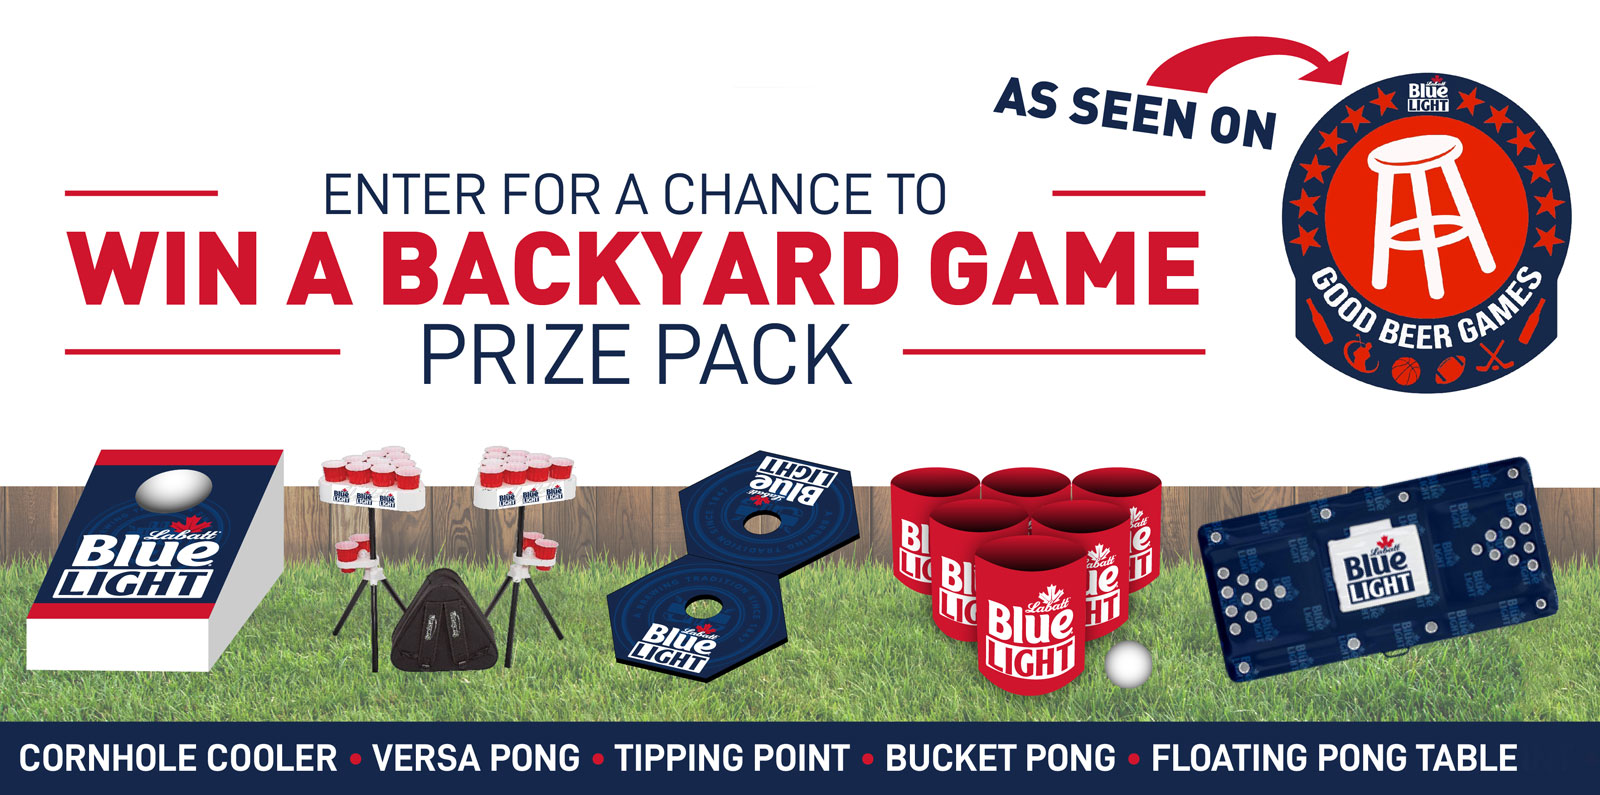 Text reads: Enter for a chance to win a backyard game prize pack, as seen on Labatt Blue Light Good Beer Games. Photo includes examples of the prizes: cornhole cooler, buket pong, versa pong, tipping point and floating pong table